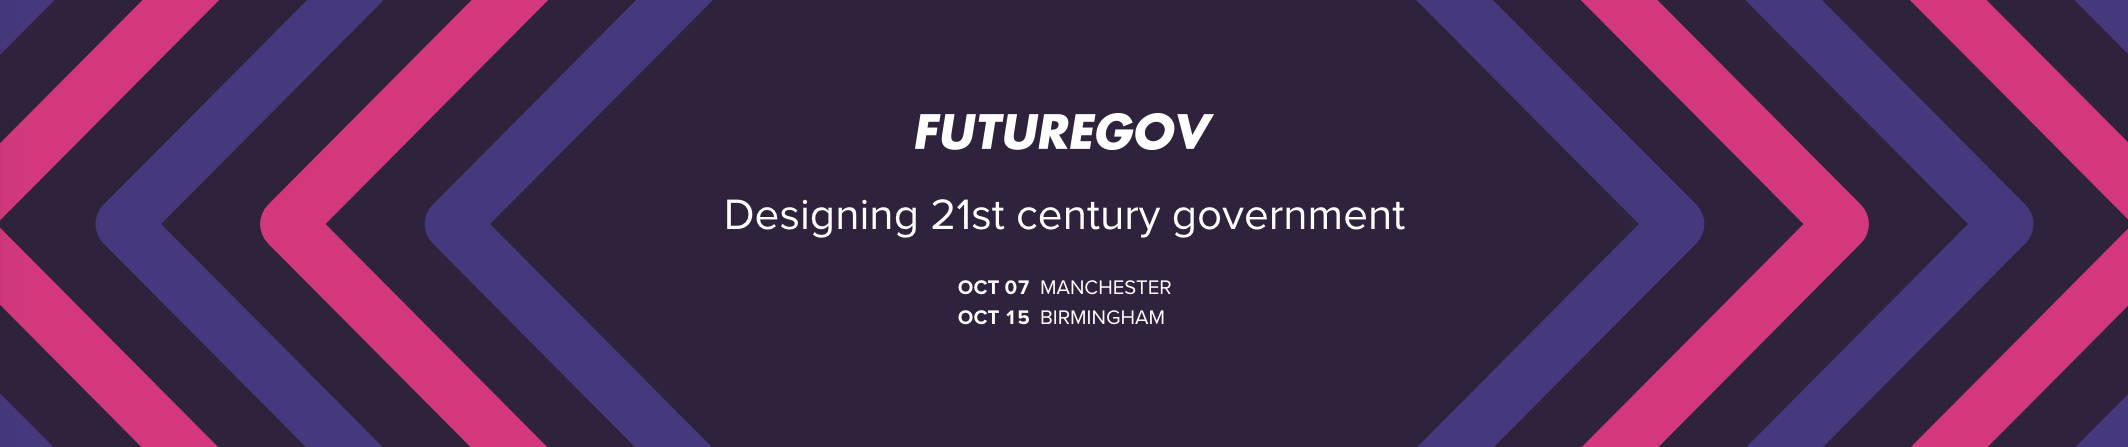 banner with FutureGov logo and title of the event